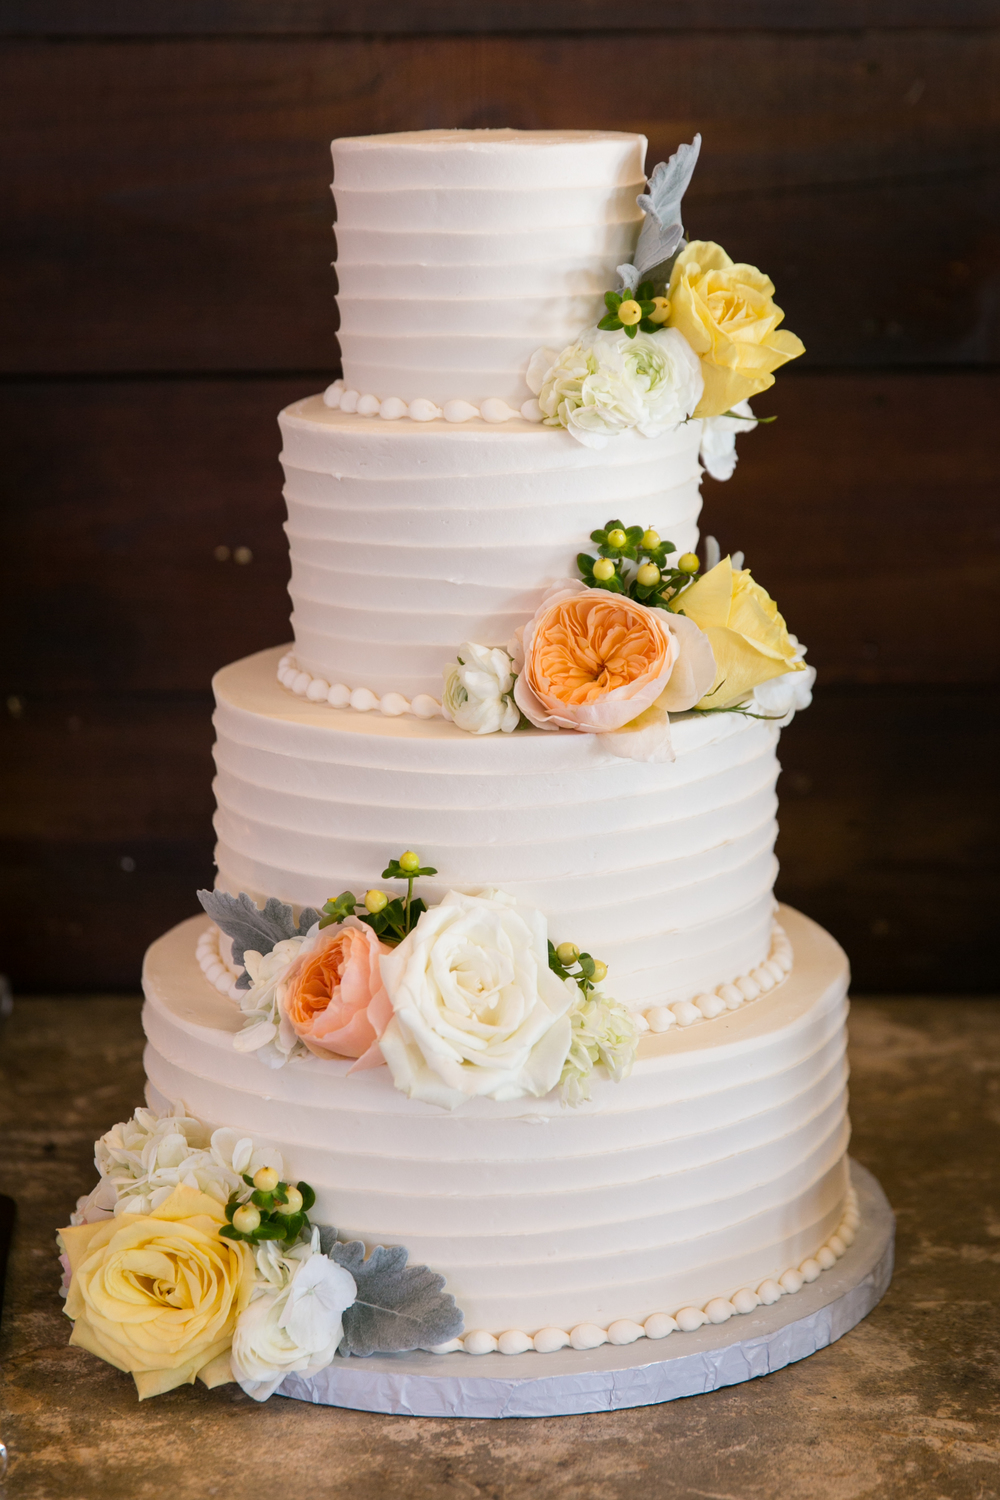 custom-wedding-cake-white-horizontal-texture-gardenroses-sugarbeesweets.jpg